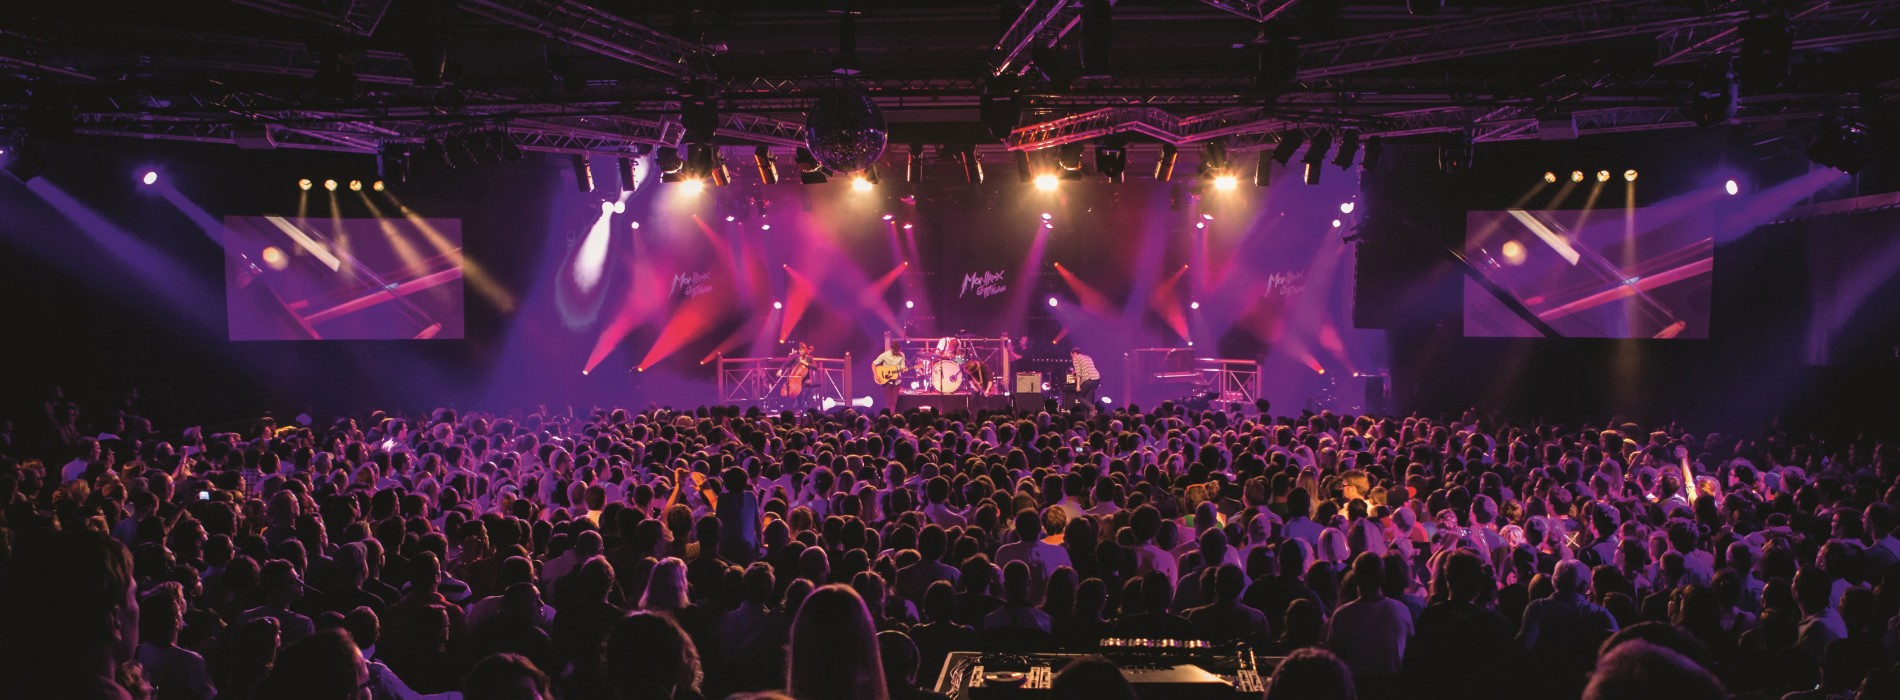 Montreux Jazz Festival kick starts from 29th June to 14th July 2018